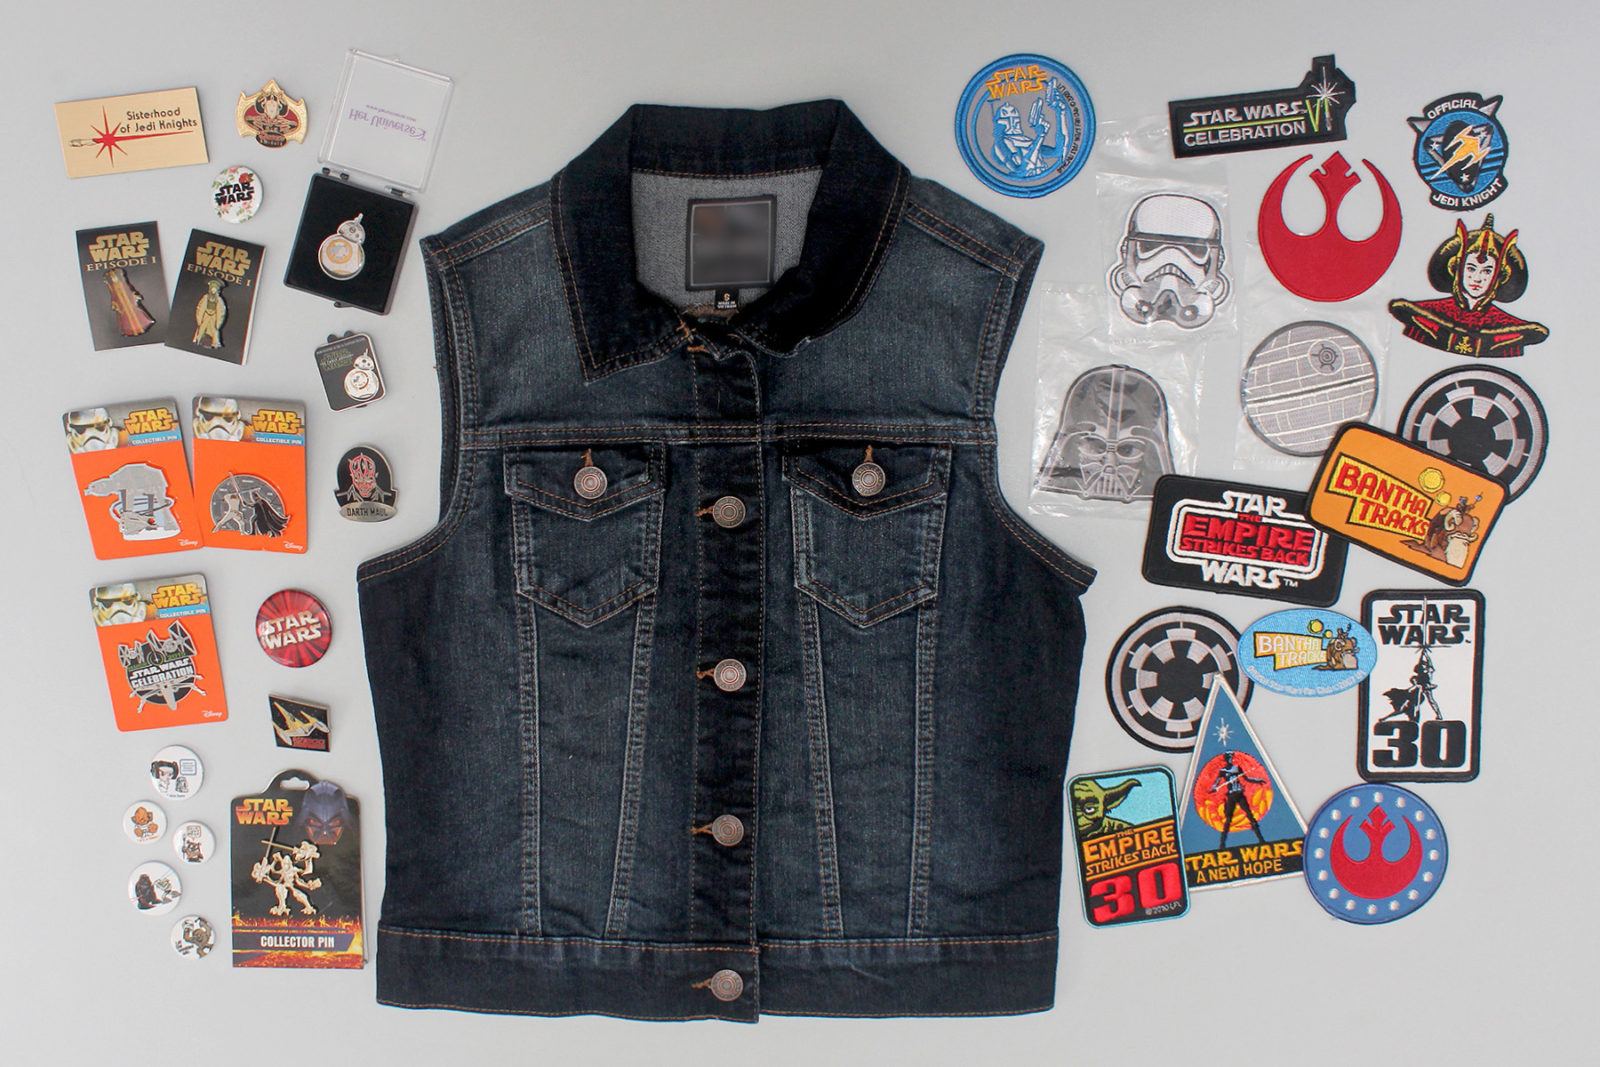 Styling pins and patches